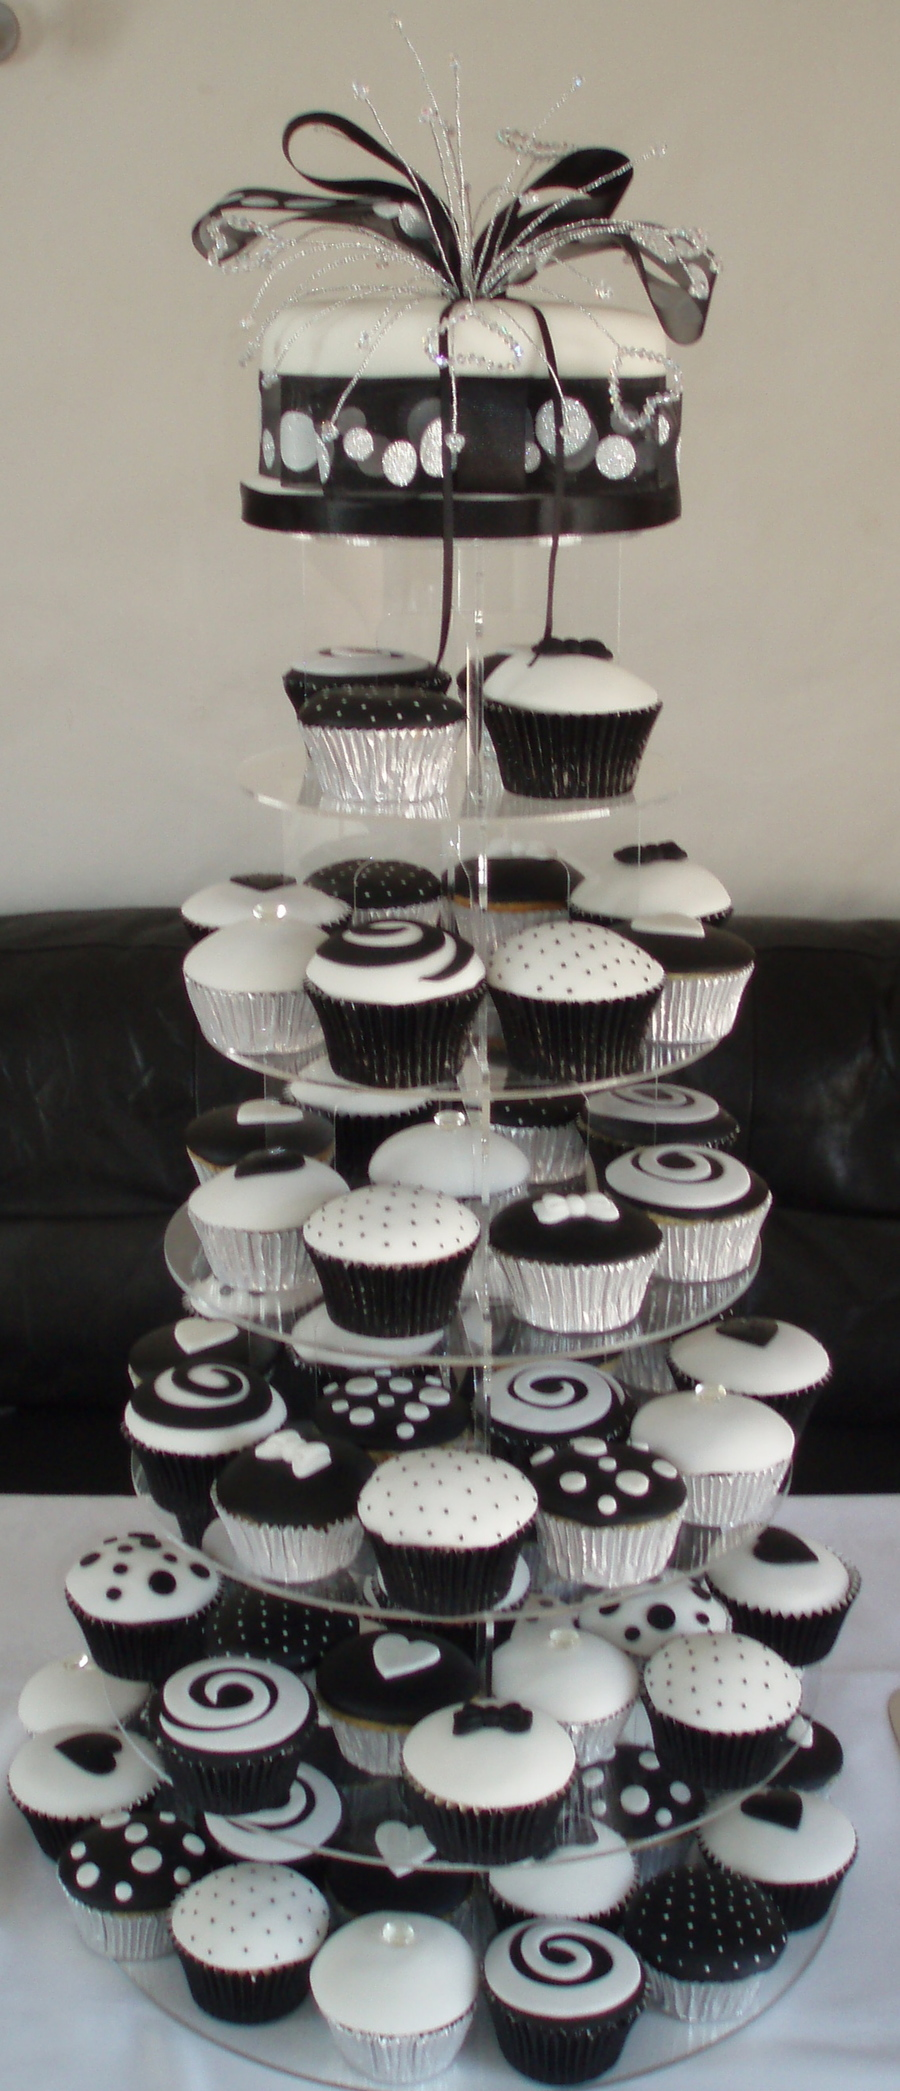 Black And White Wedding Cupcake Tower - CakeCentral.com